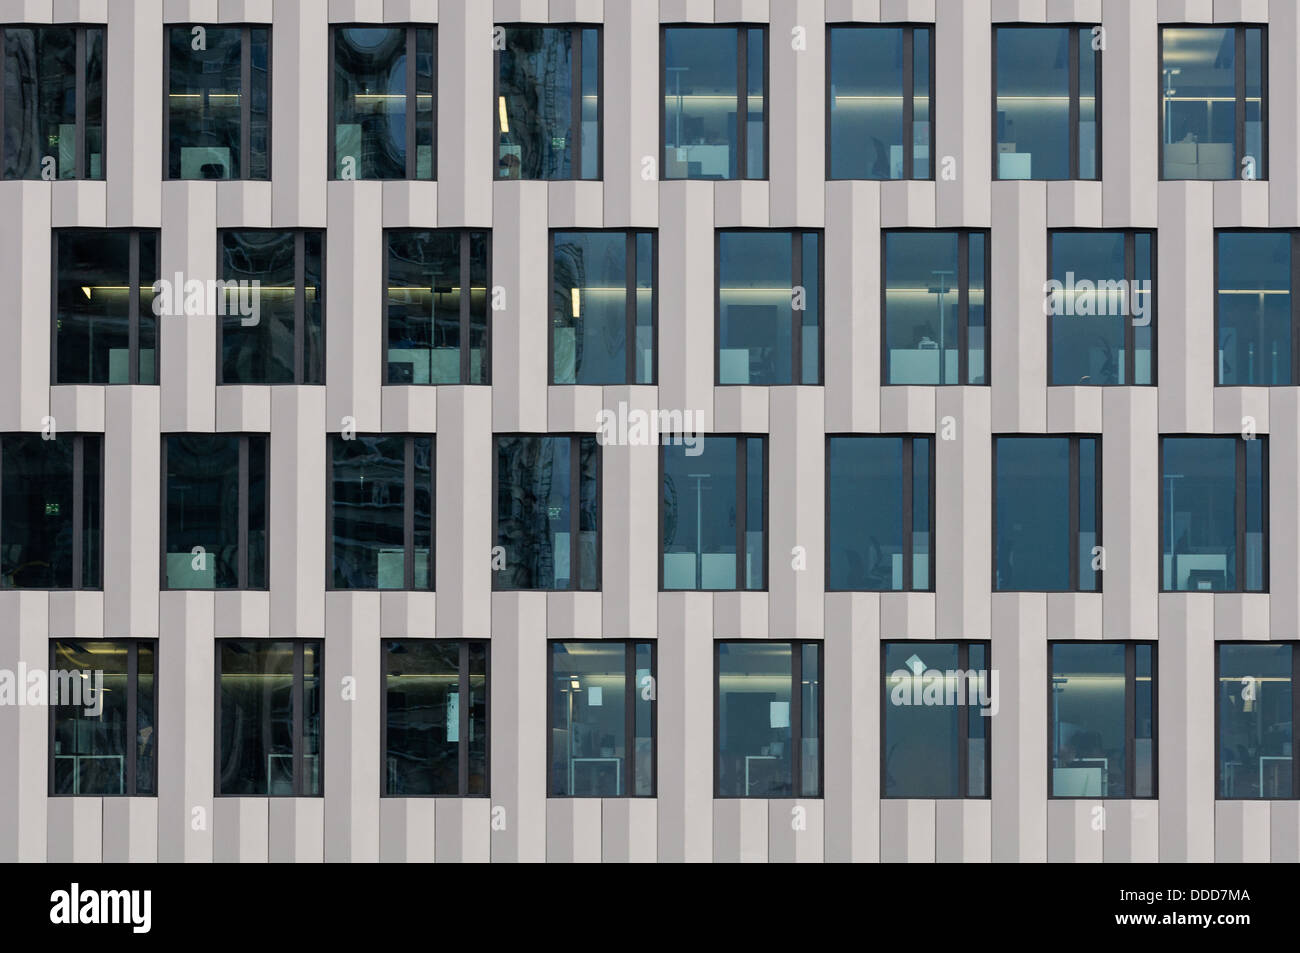 Office Building Facade Zurich Switzerland Stock Photo: building facade pictures